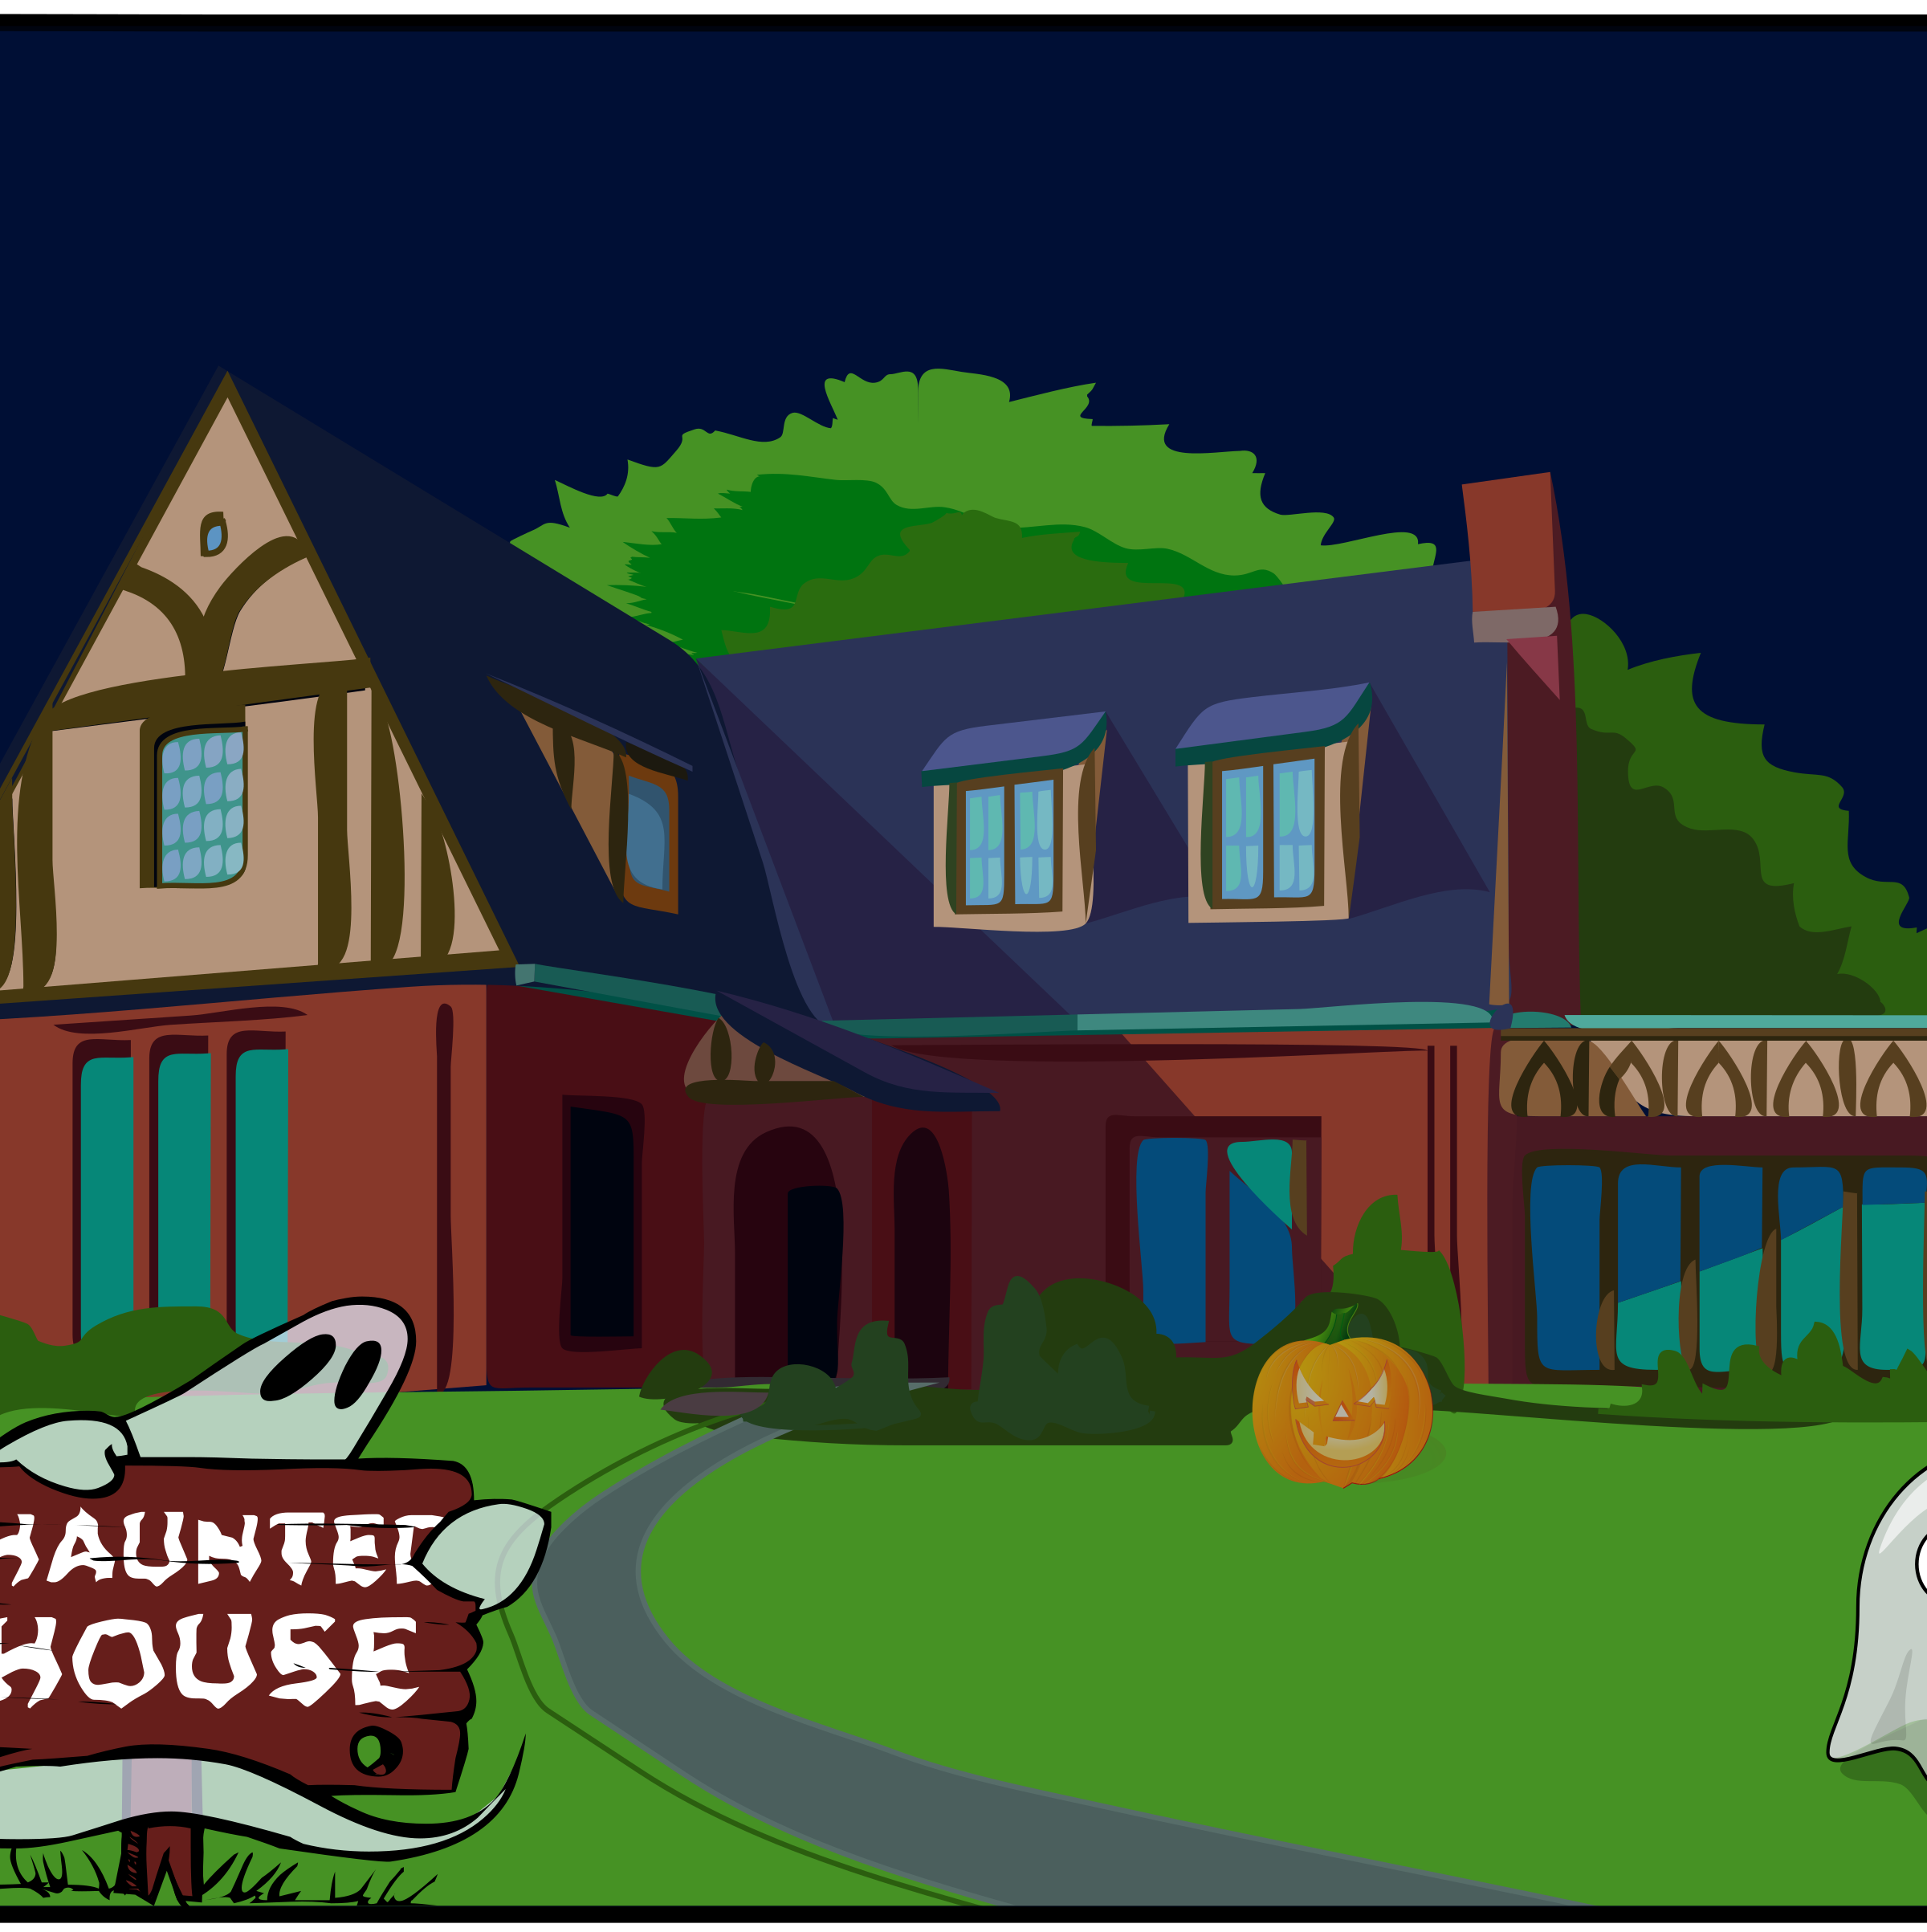 Haunted House by eady